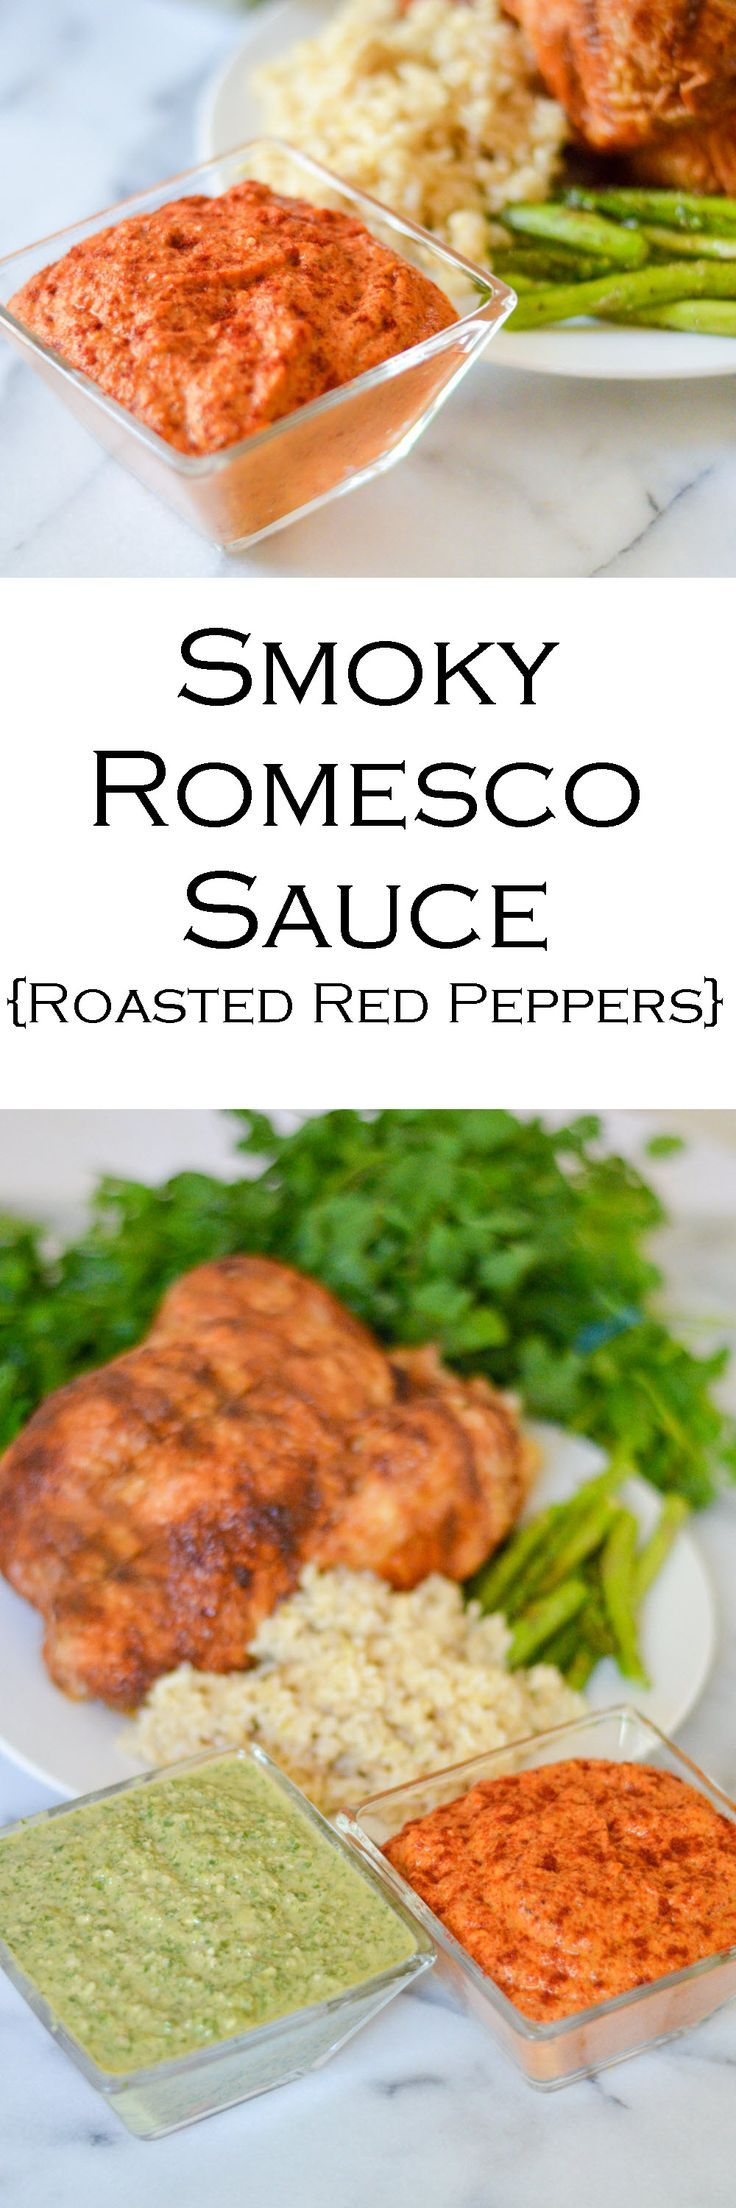 Smoky Romesco Sauce Recipe w. Roasted Bell Peppers + Smoked Paprika